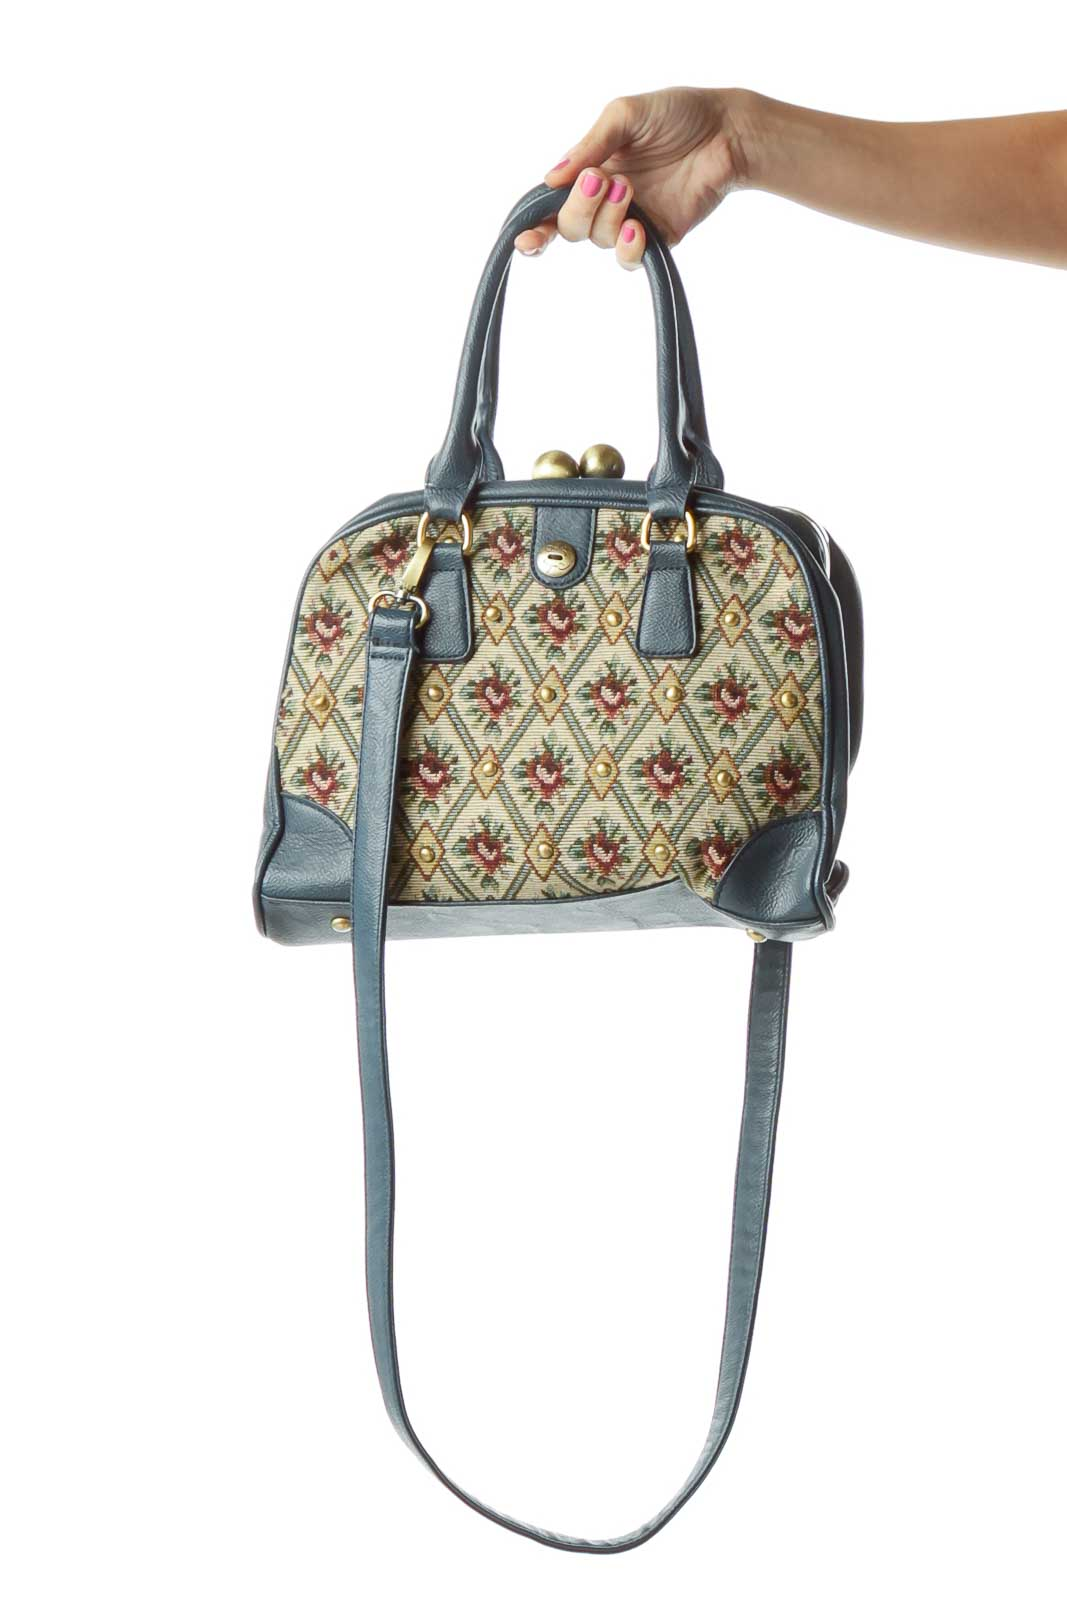 Blue Floral Woven Leather Trim Satchel Front